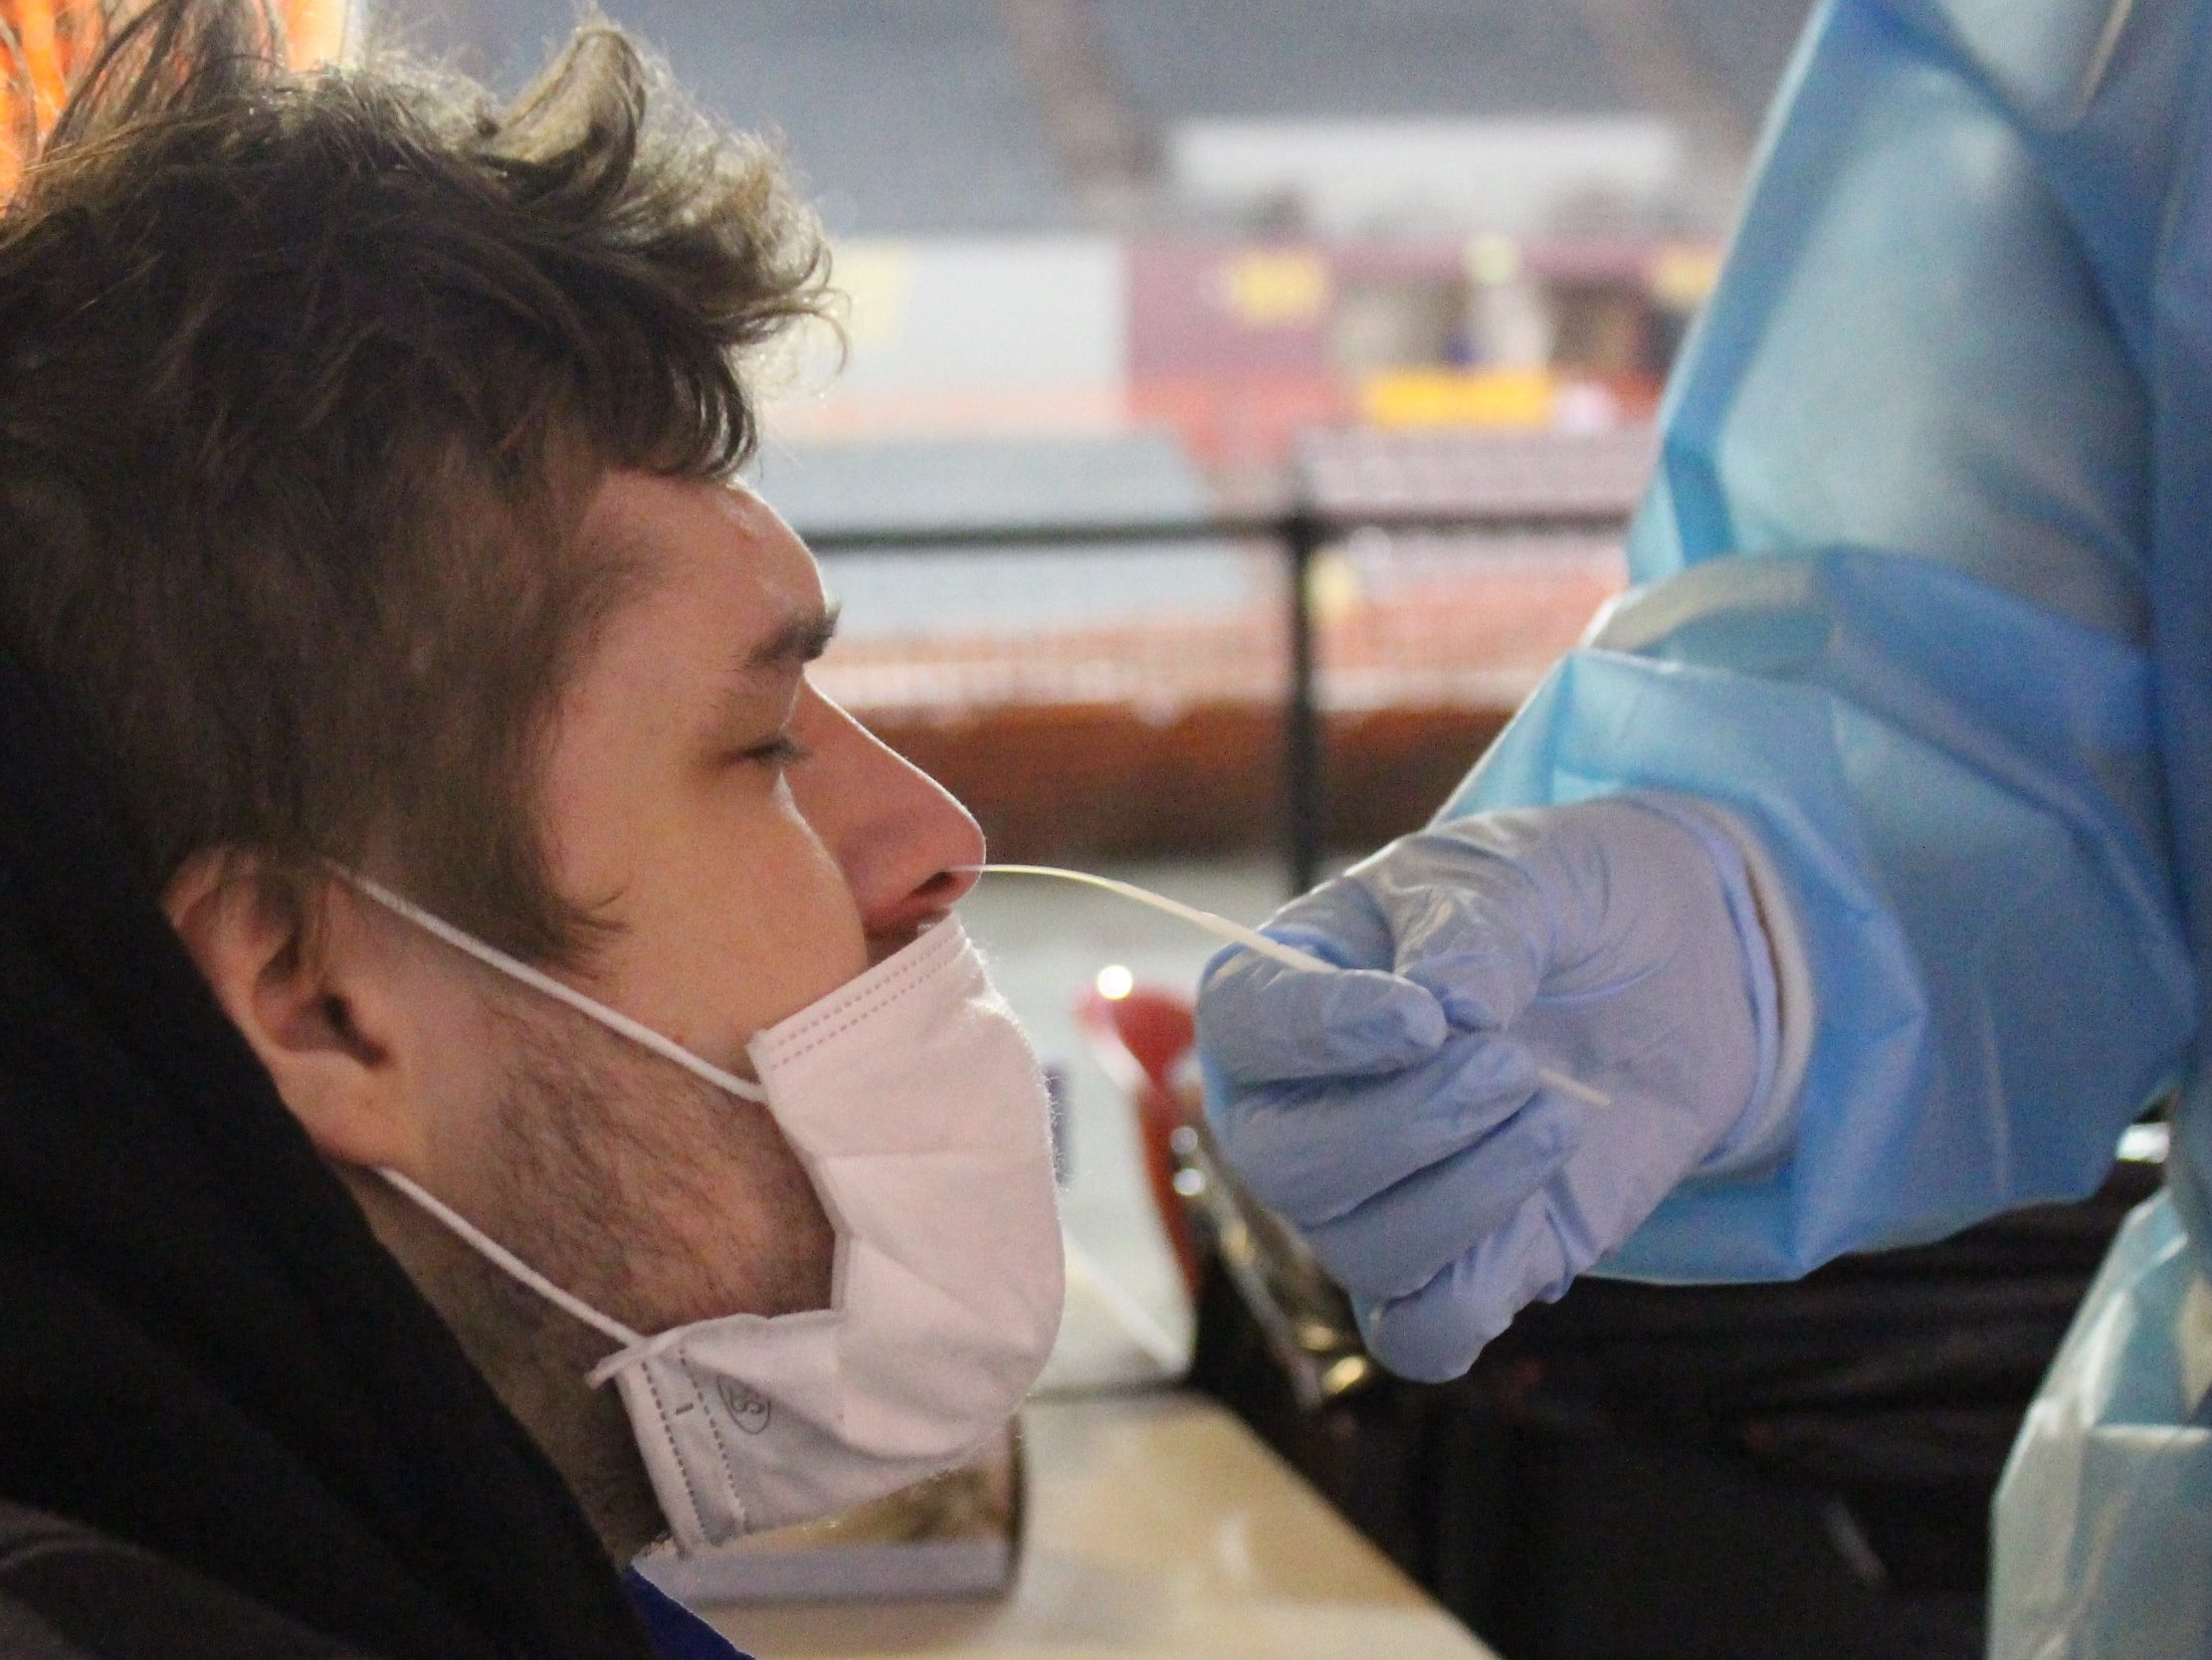 A white man gets his nose swabbed by a person in blue latex gloves